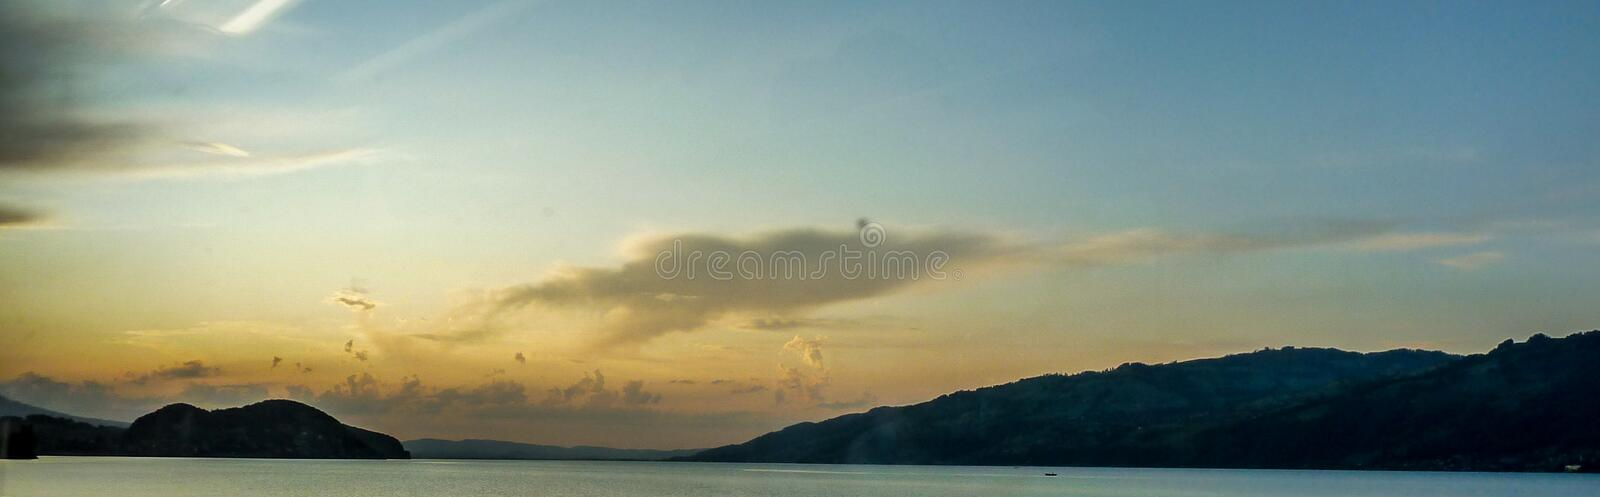 Switzerland, Lauterbrunnen, SCENIC VIEW OF SEA AGAINST SKY DURING SUNSET. Switzerland, Lauterbrunnen, Europe, SCENIC VIEW OF SEA AGAINST SKY DURING SUNSET royalty free stock images